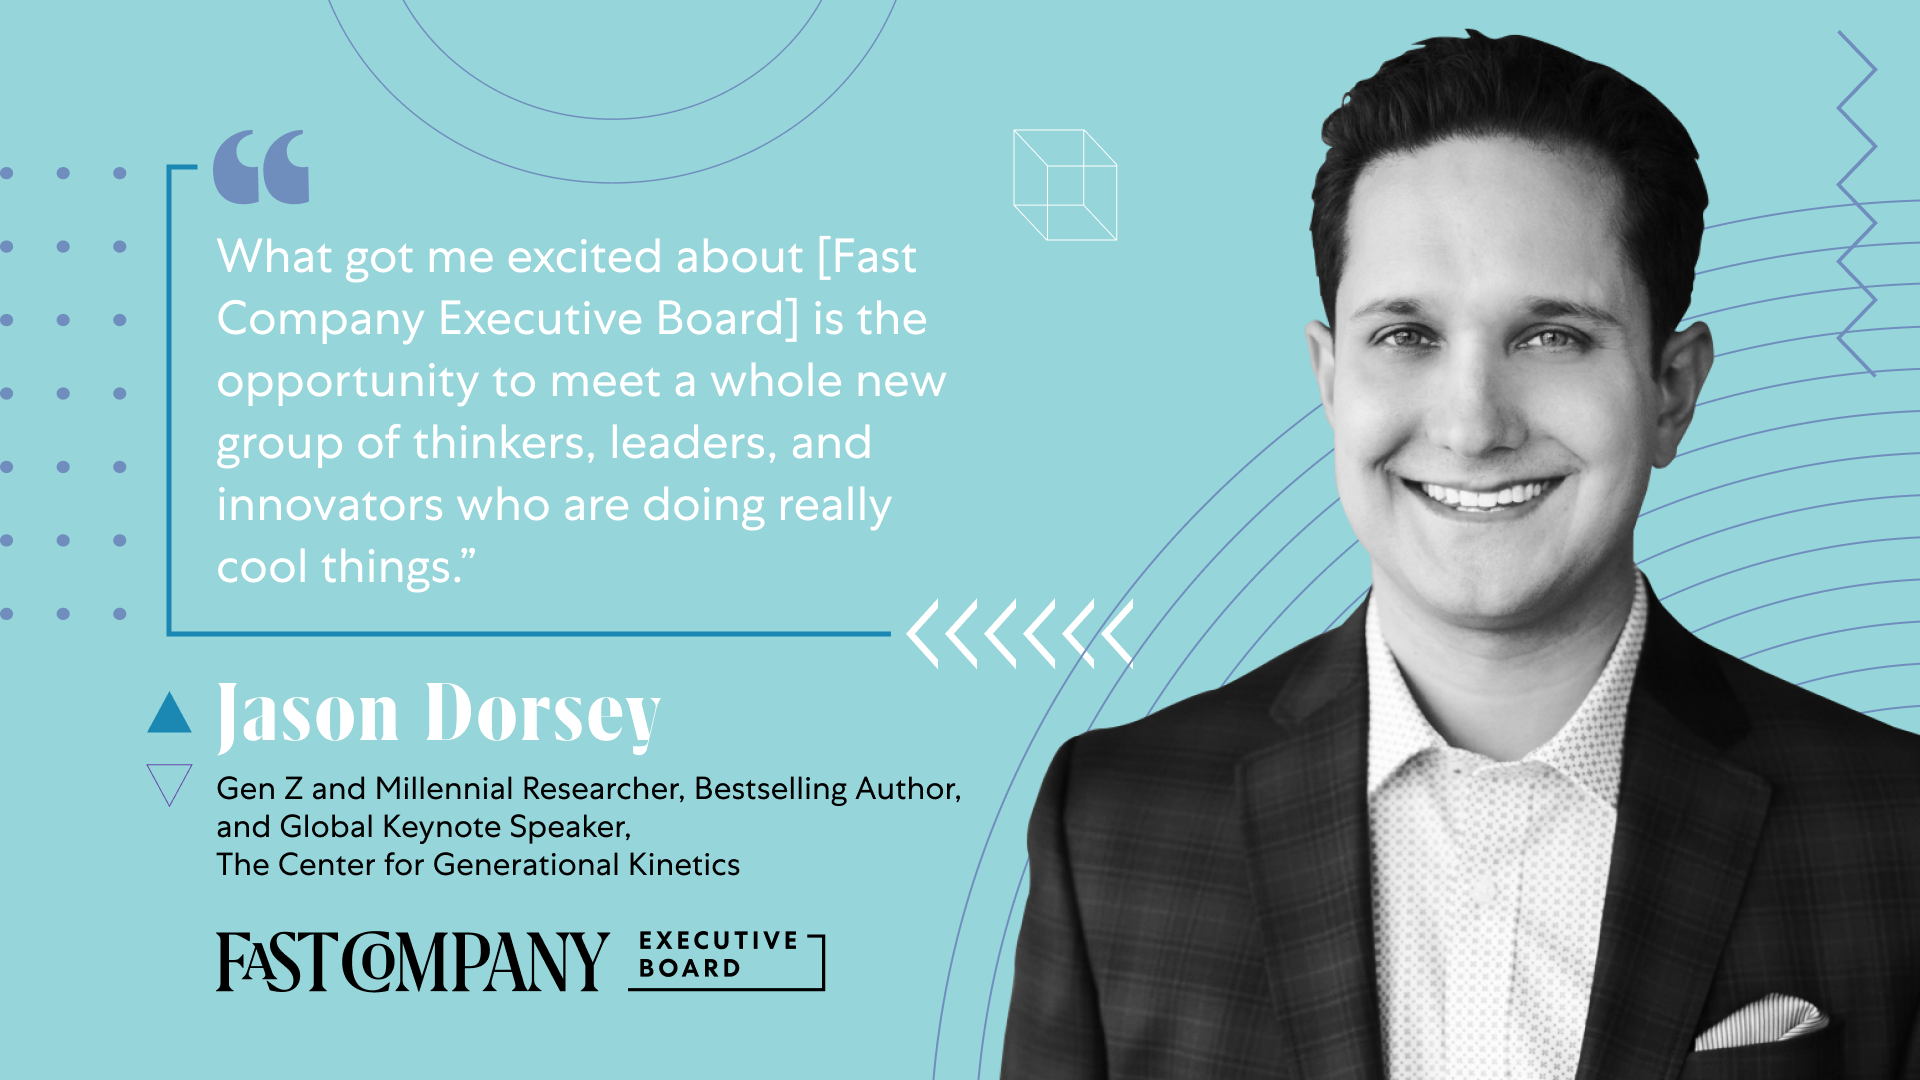 Fast Company Executive Board Will Give Jason Dorsey New Connections to Innovators, Thinkers, and Leaders